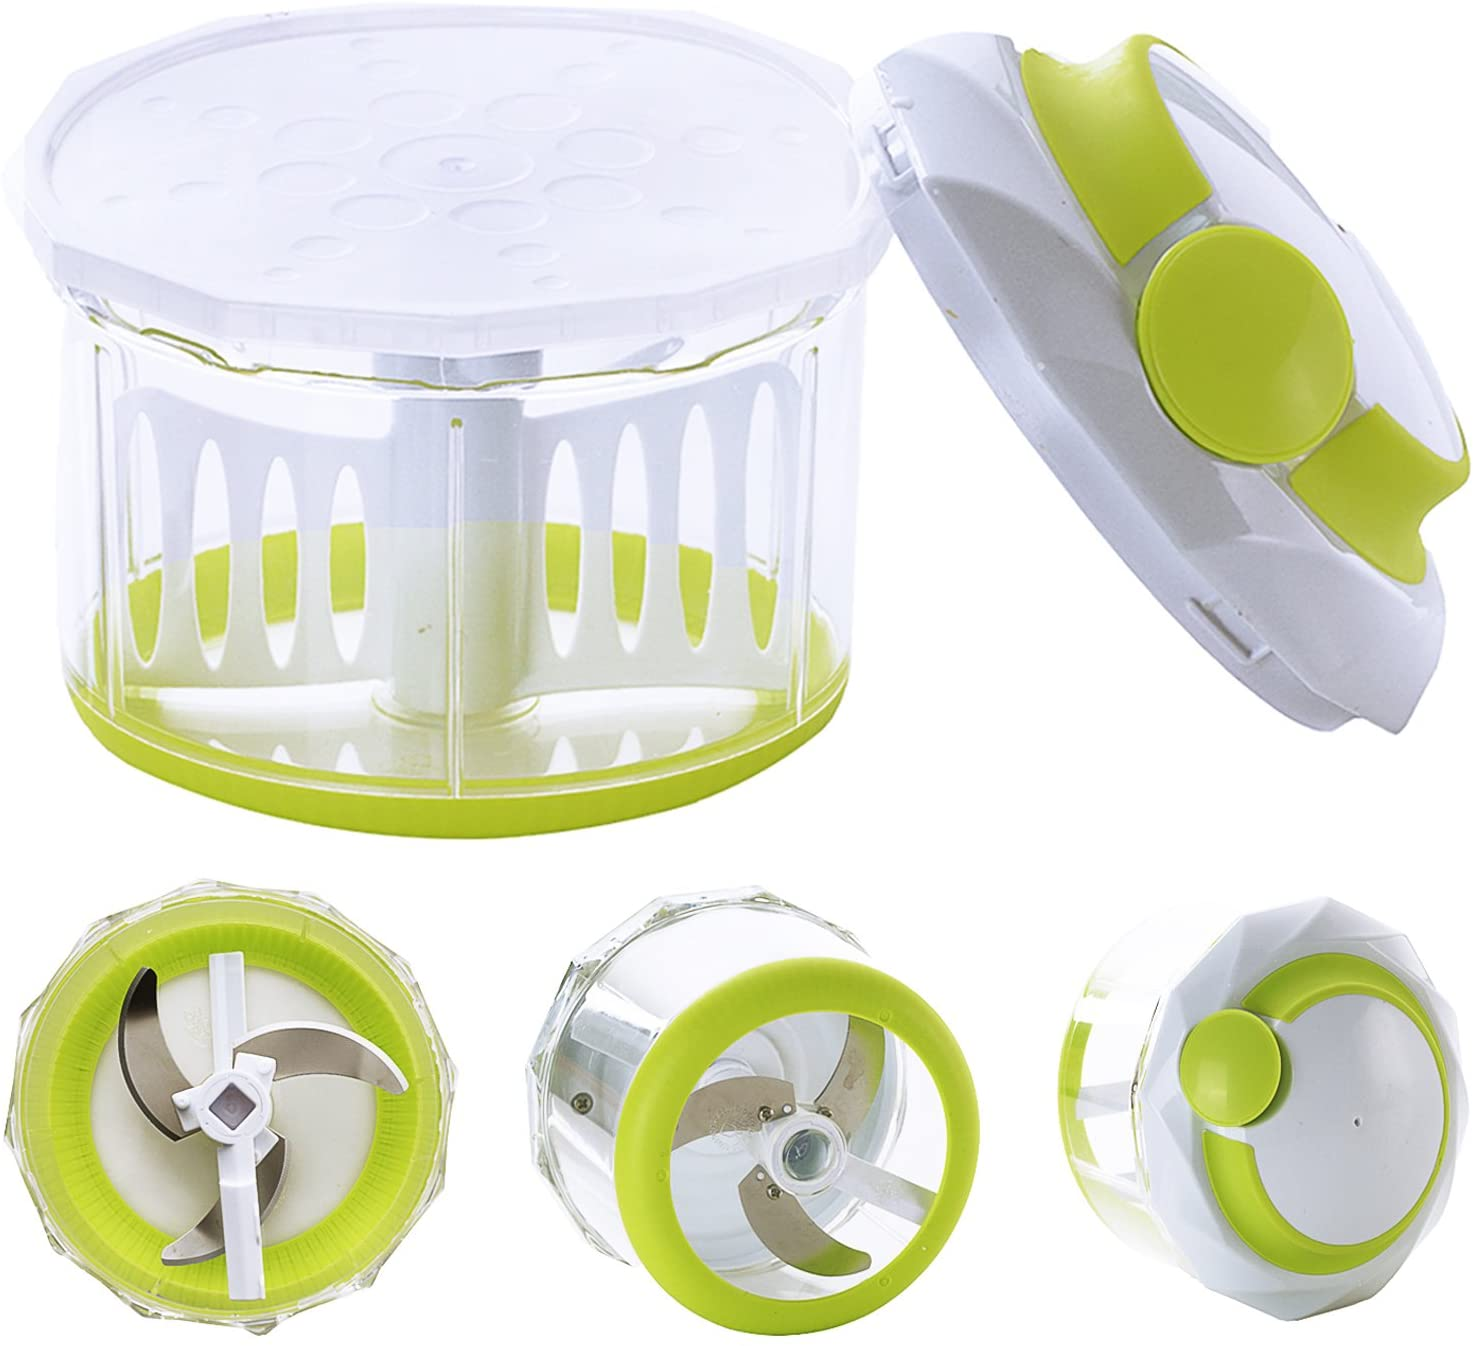 Pull Food Chopper with Mincer Chopper Blades&Plastic Mixer Blender(4 Cup) Manual Food Processor to Chop Vegetable Fruit Meat Nut Onion Carrot Garlic Potato for Salad